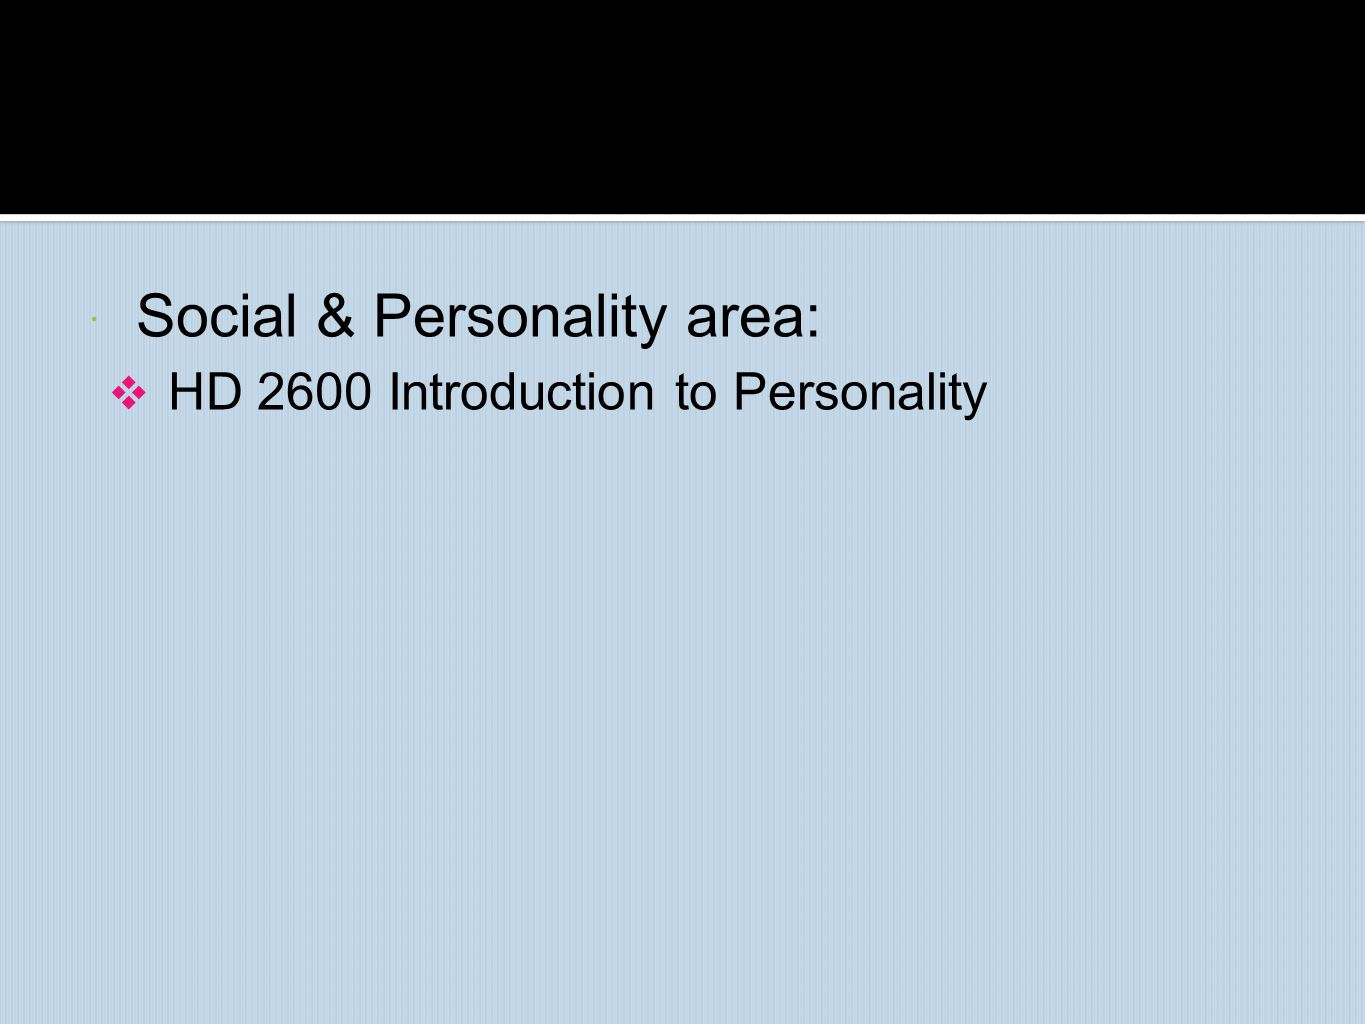  Social & Personality area:  HD 2600 Introduction to Personality